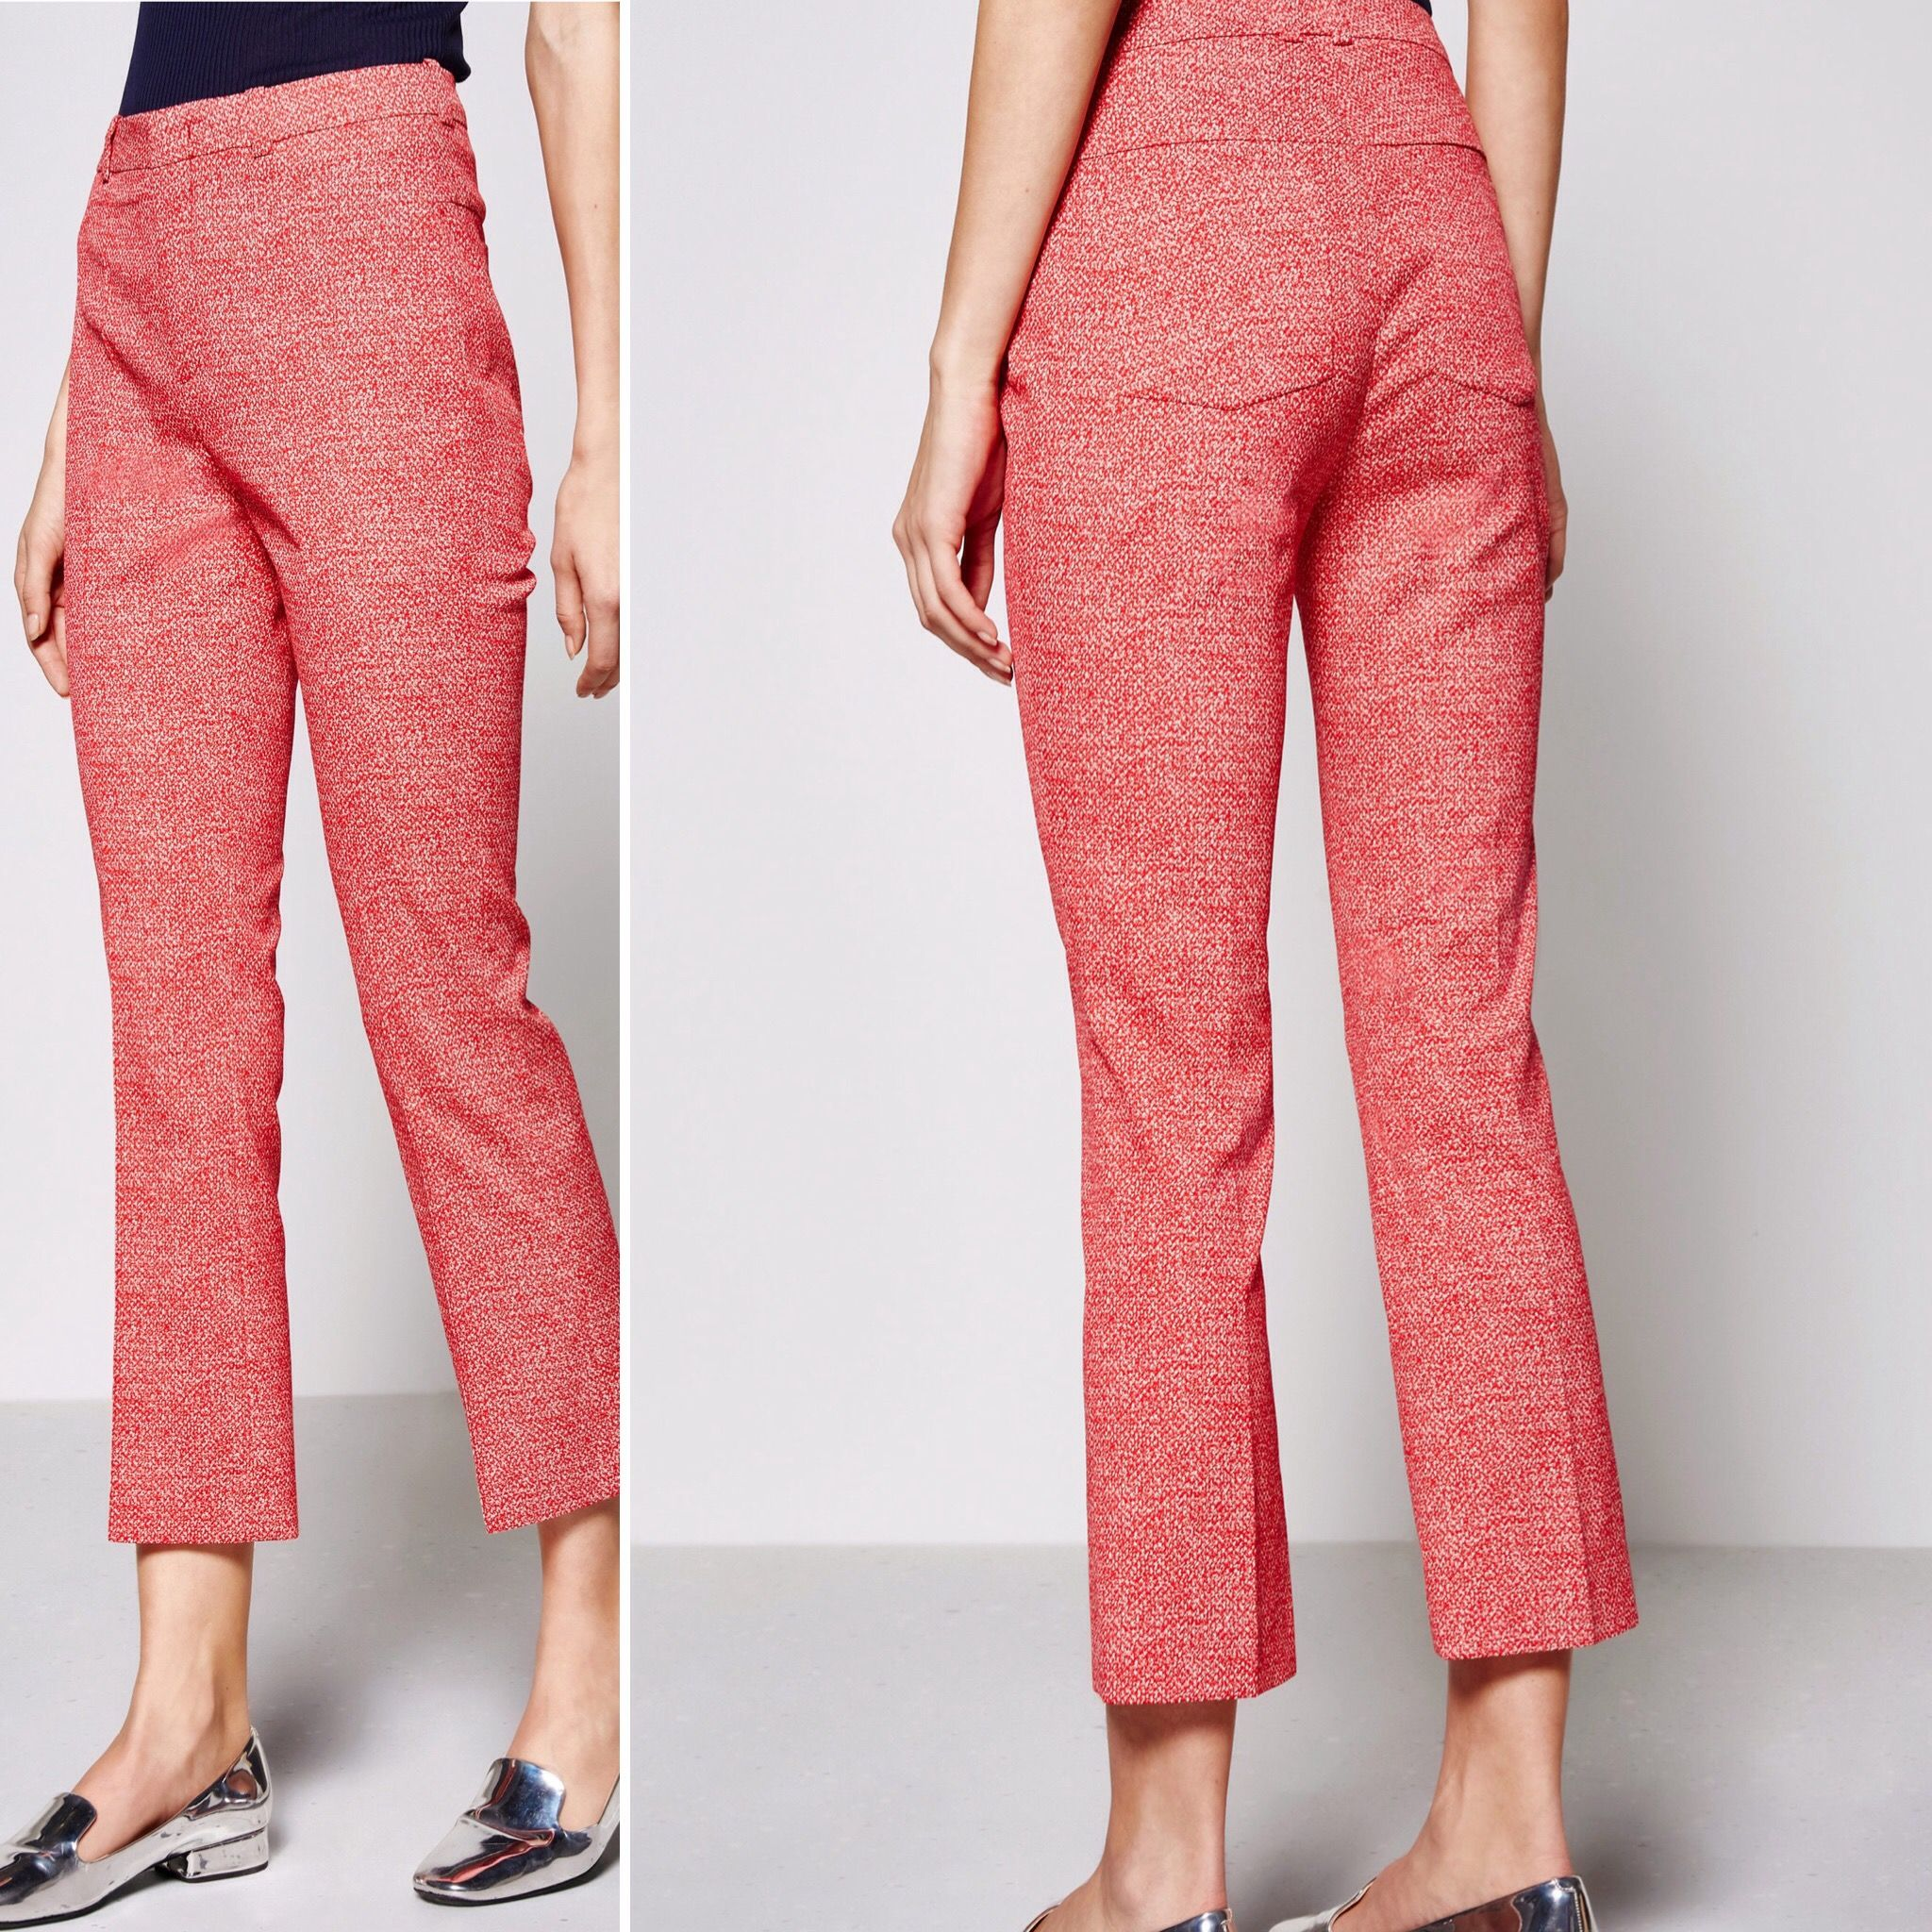 Drykorn High Waist Slim Fit Flared Trousers Vibe €159